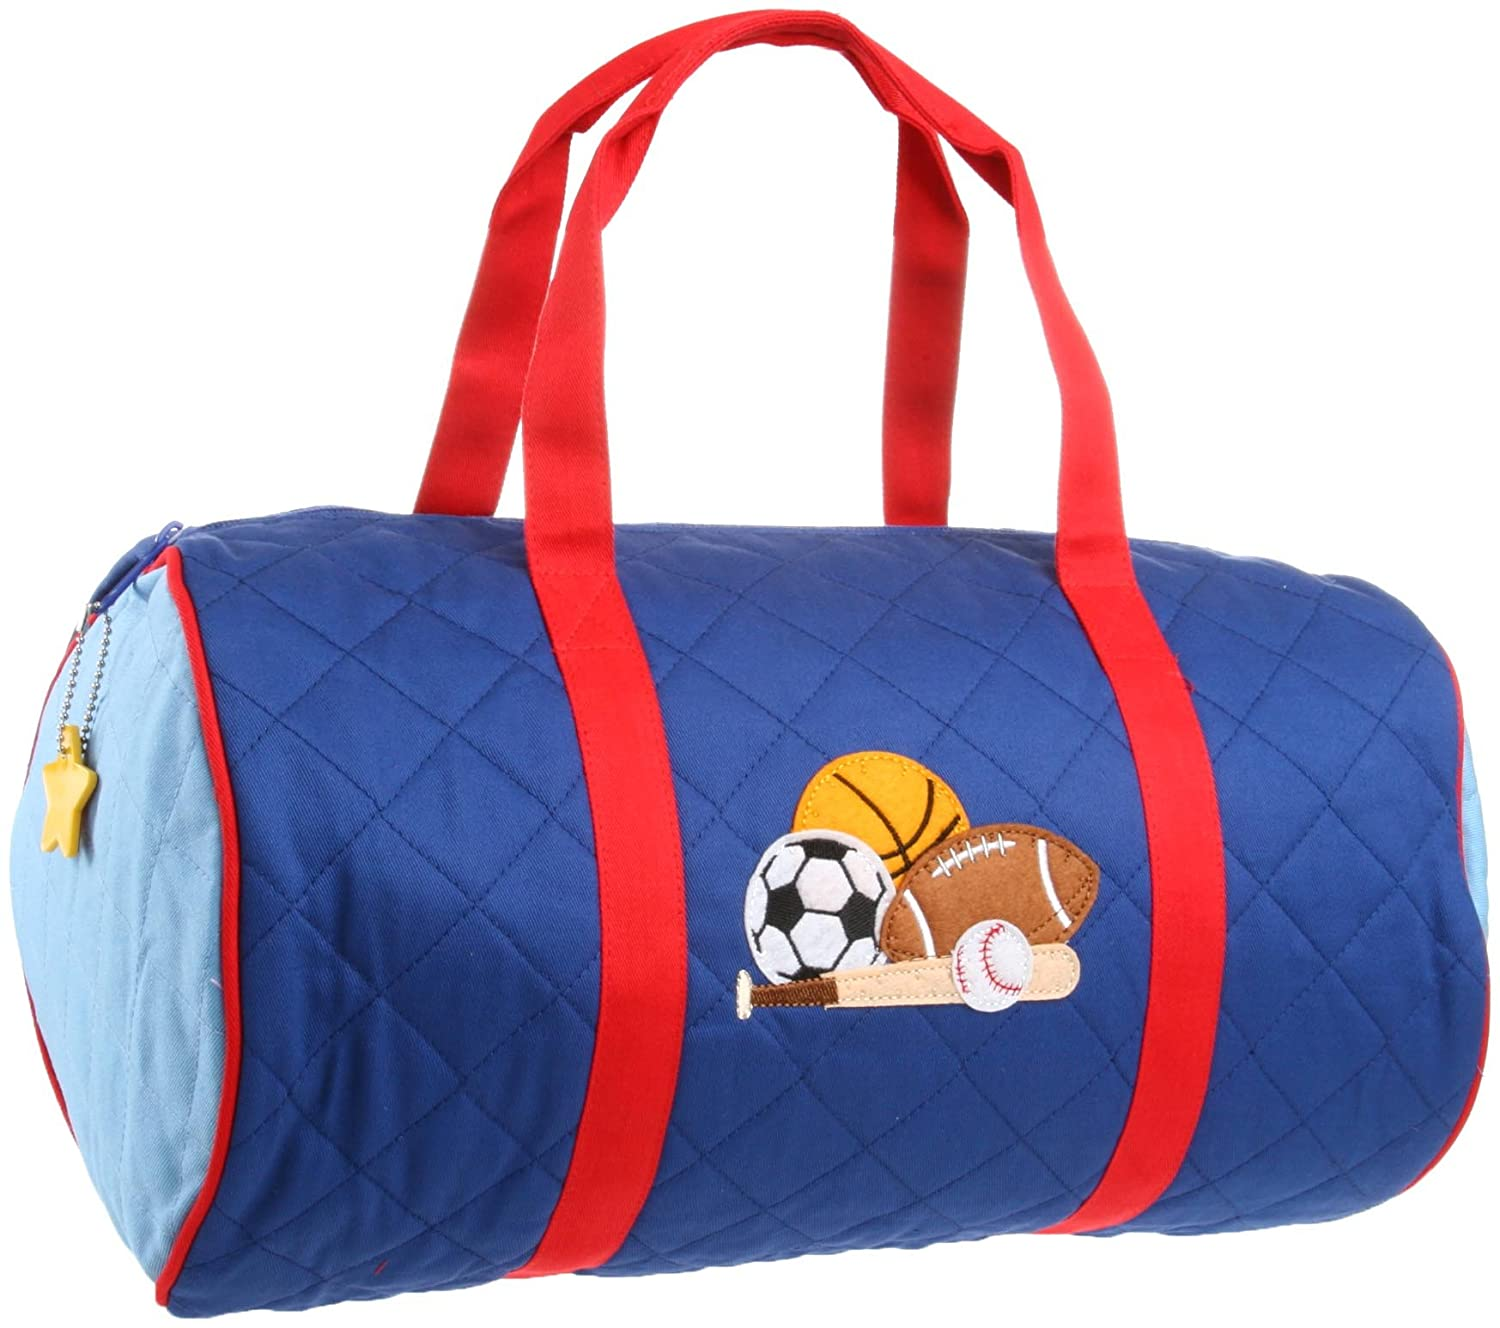 Quilted Duffle Sports Bag Stephan Joseph Kids Boys Bags